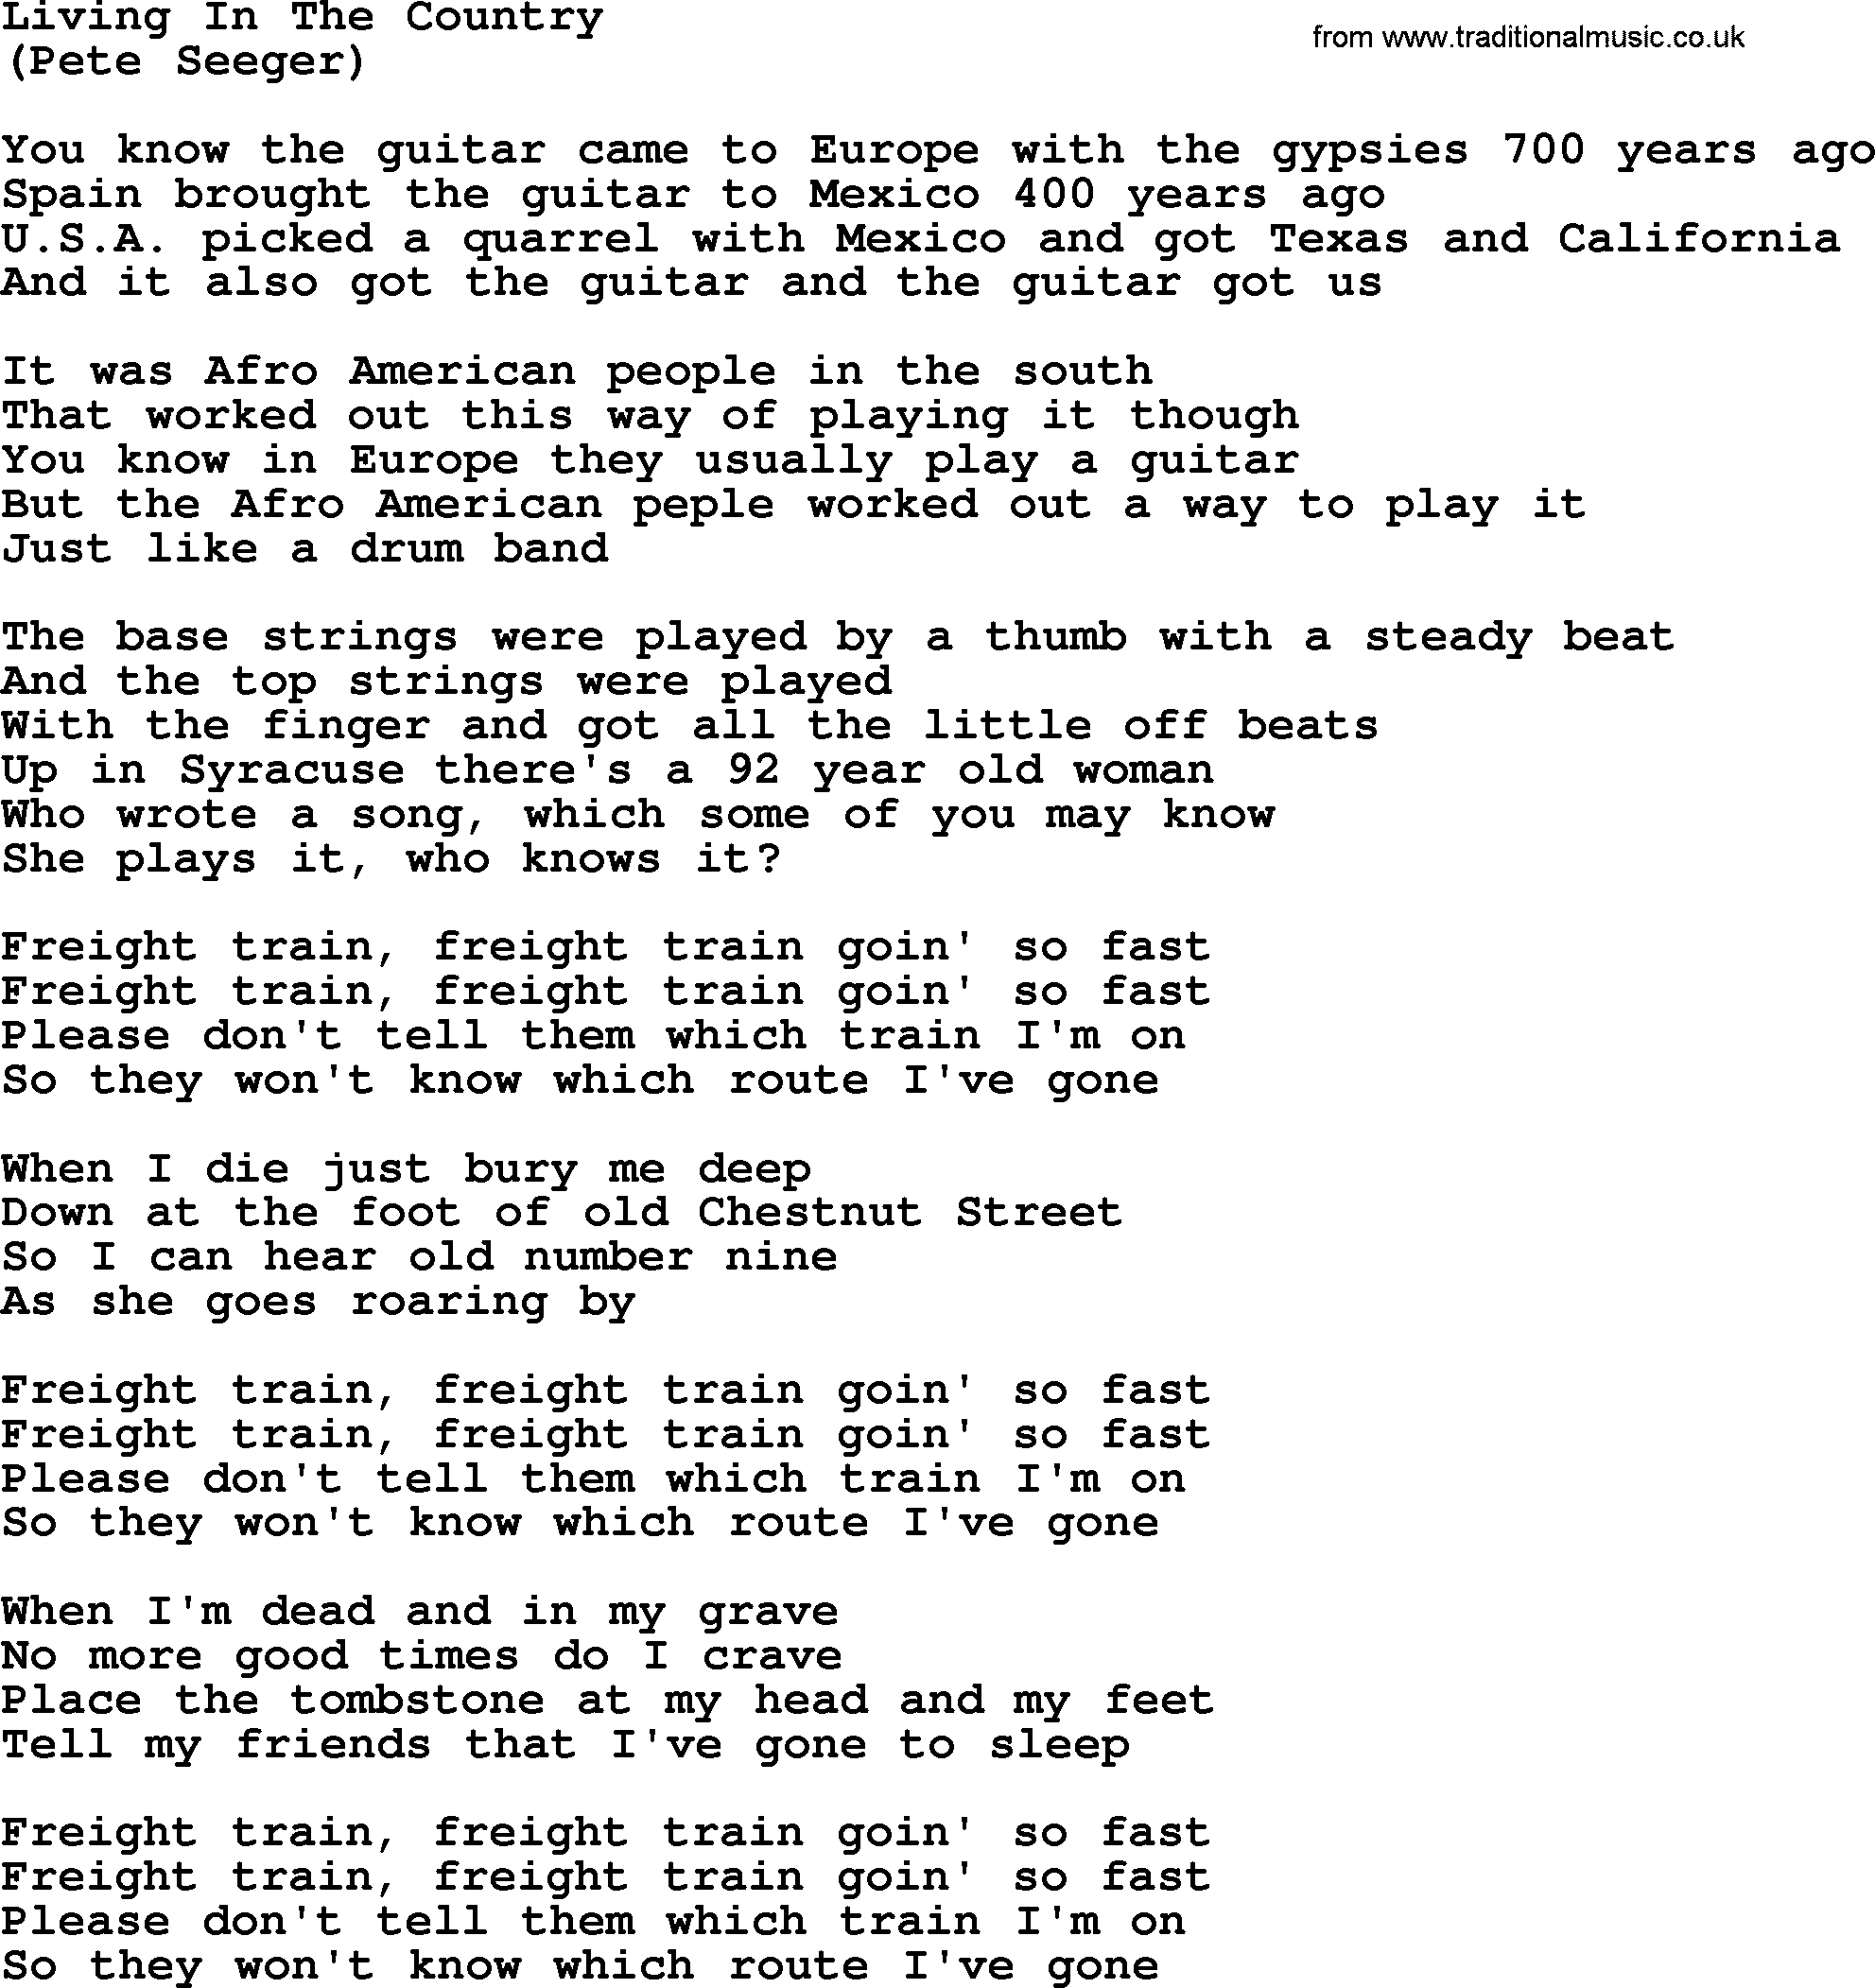 Living In The Country, by The Byrds   lyrics with pdf